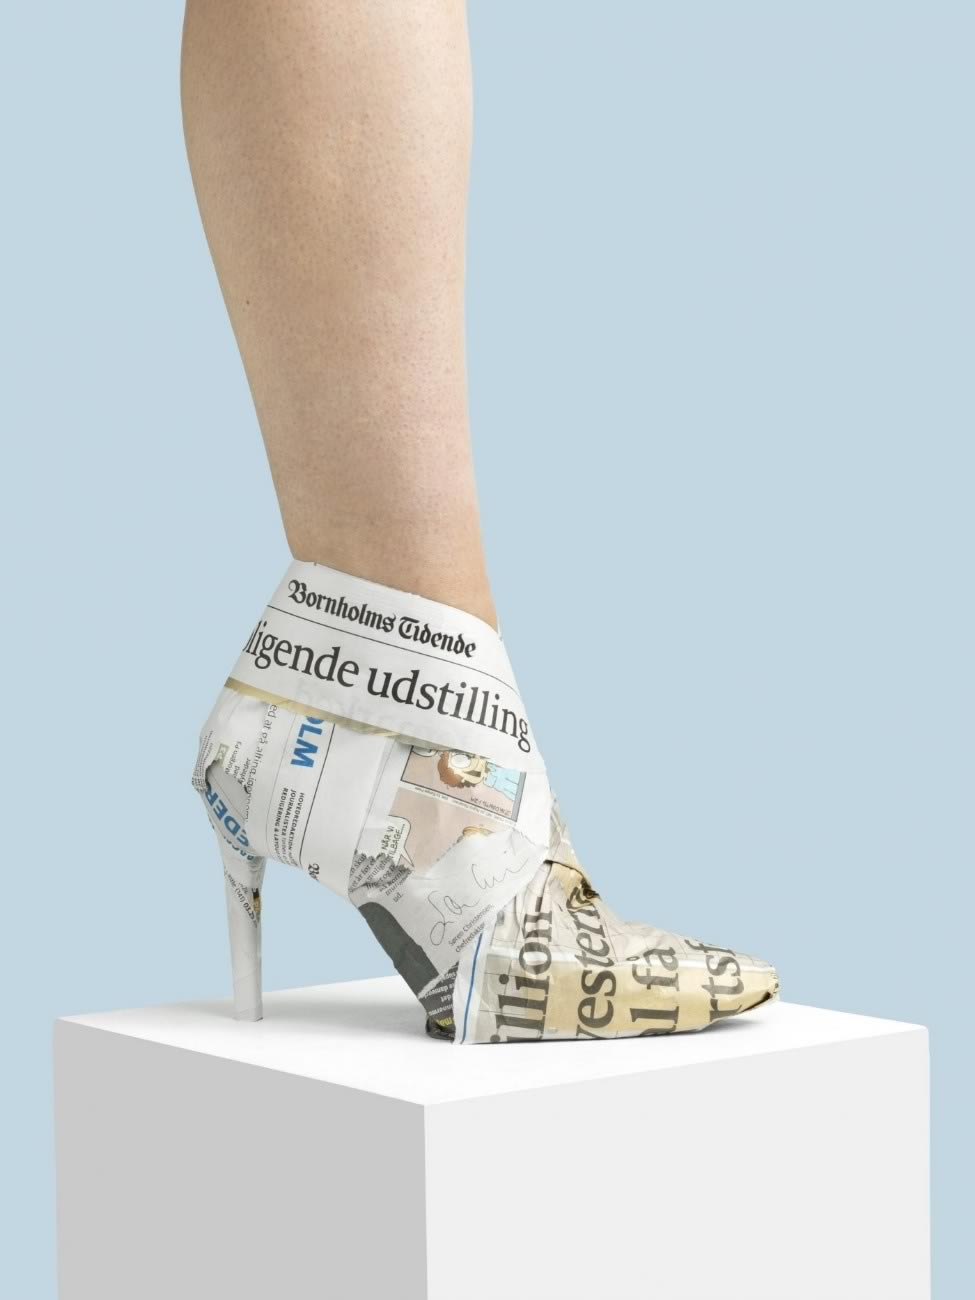 Nikolaj Beyer, Everyday shoes, The newspaper boot